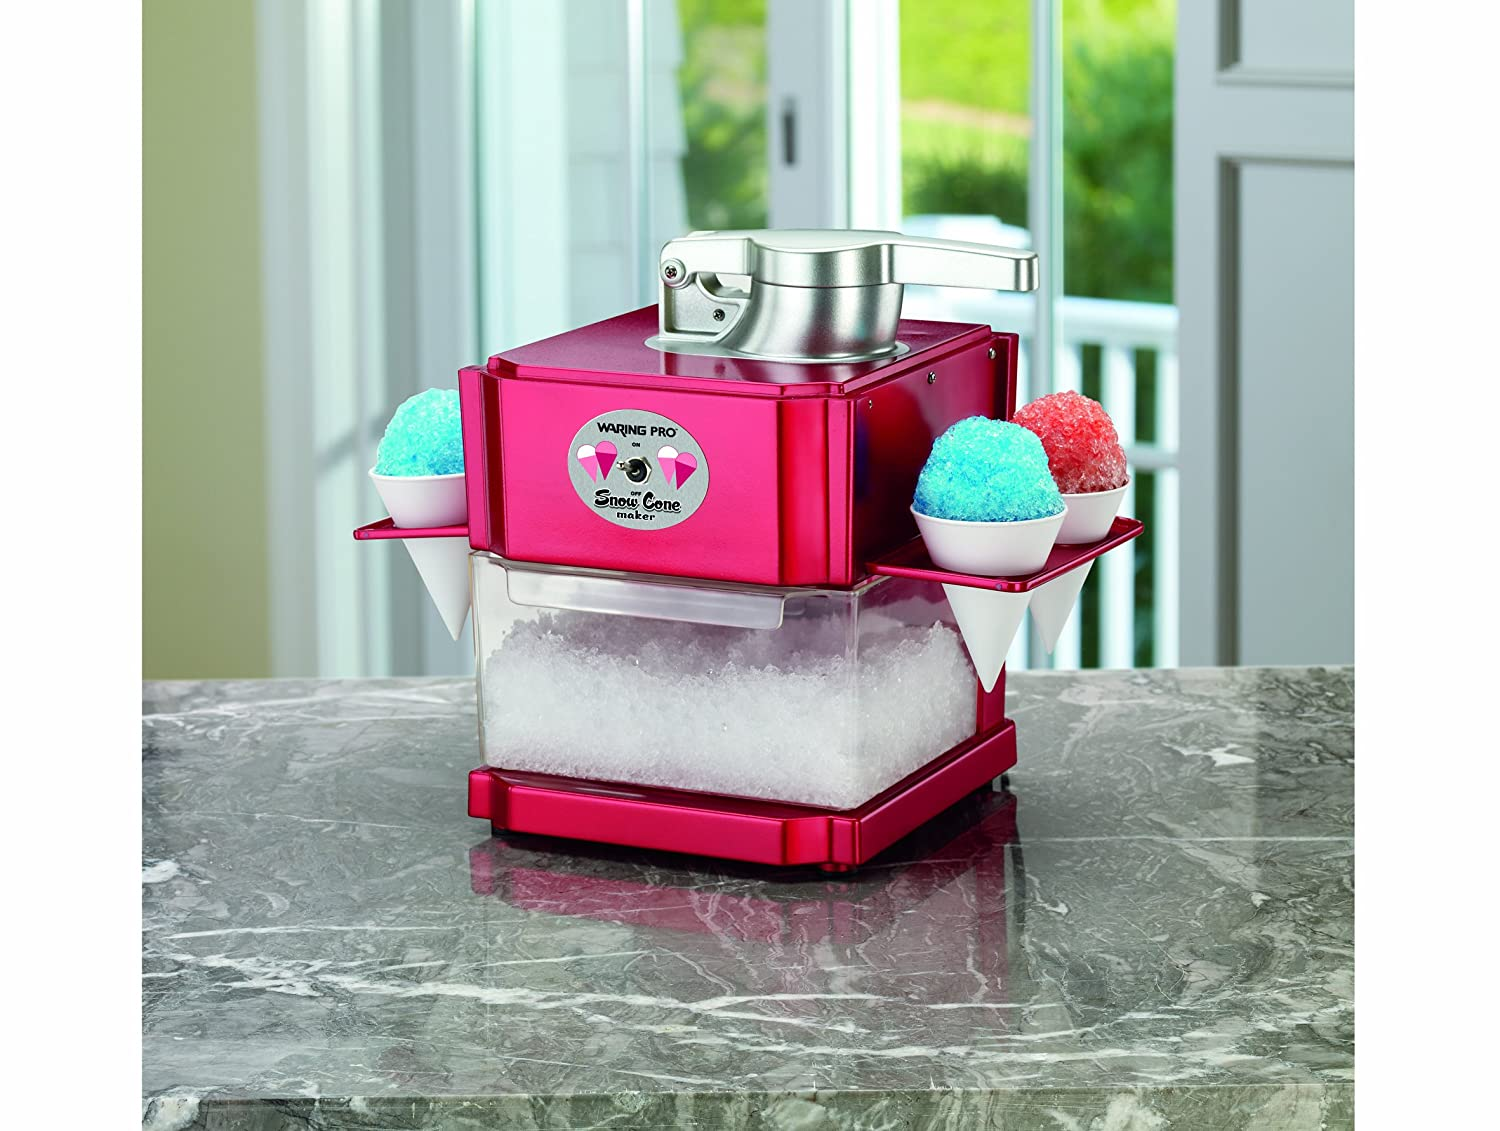 amazoncom waring pro scm100 snow cone maker shaved ice machines kitchen u0026 dining - Snow Cone Machine For Sale